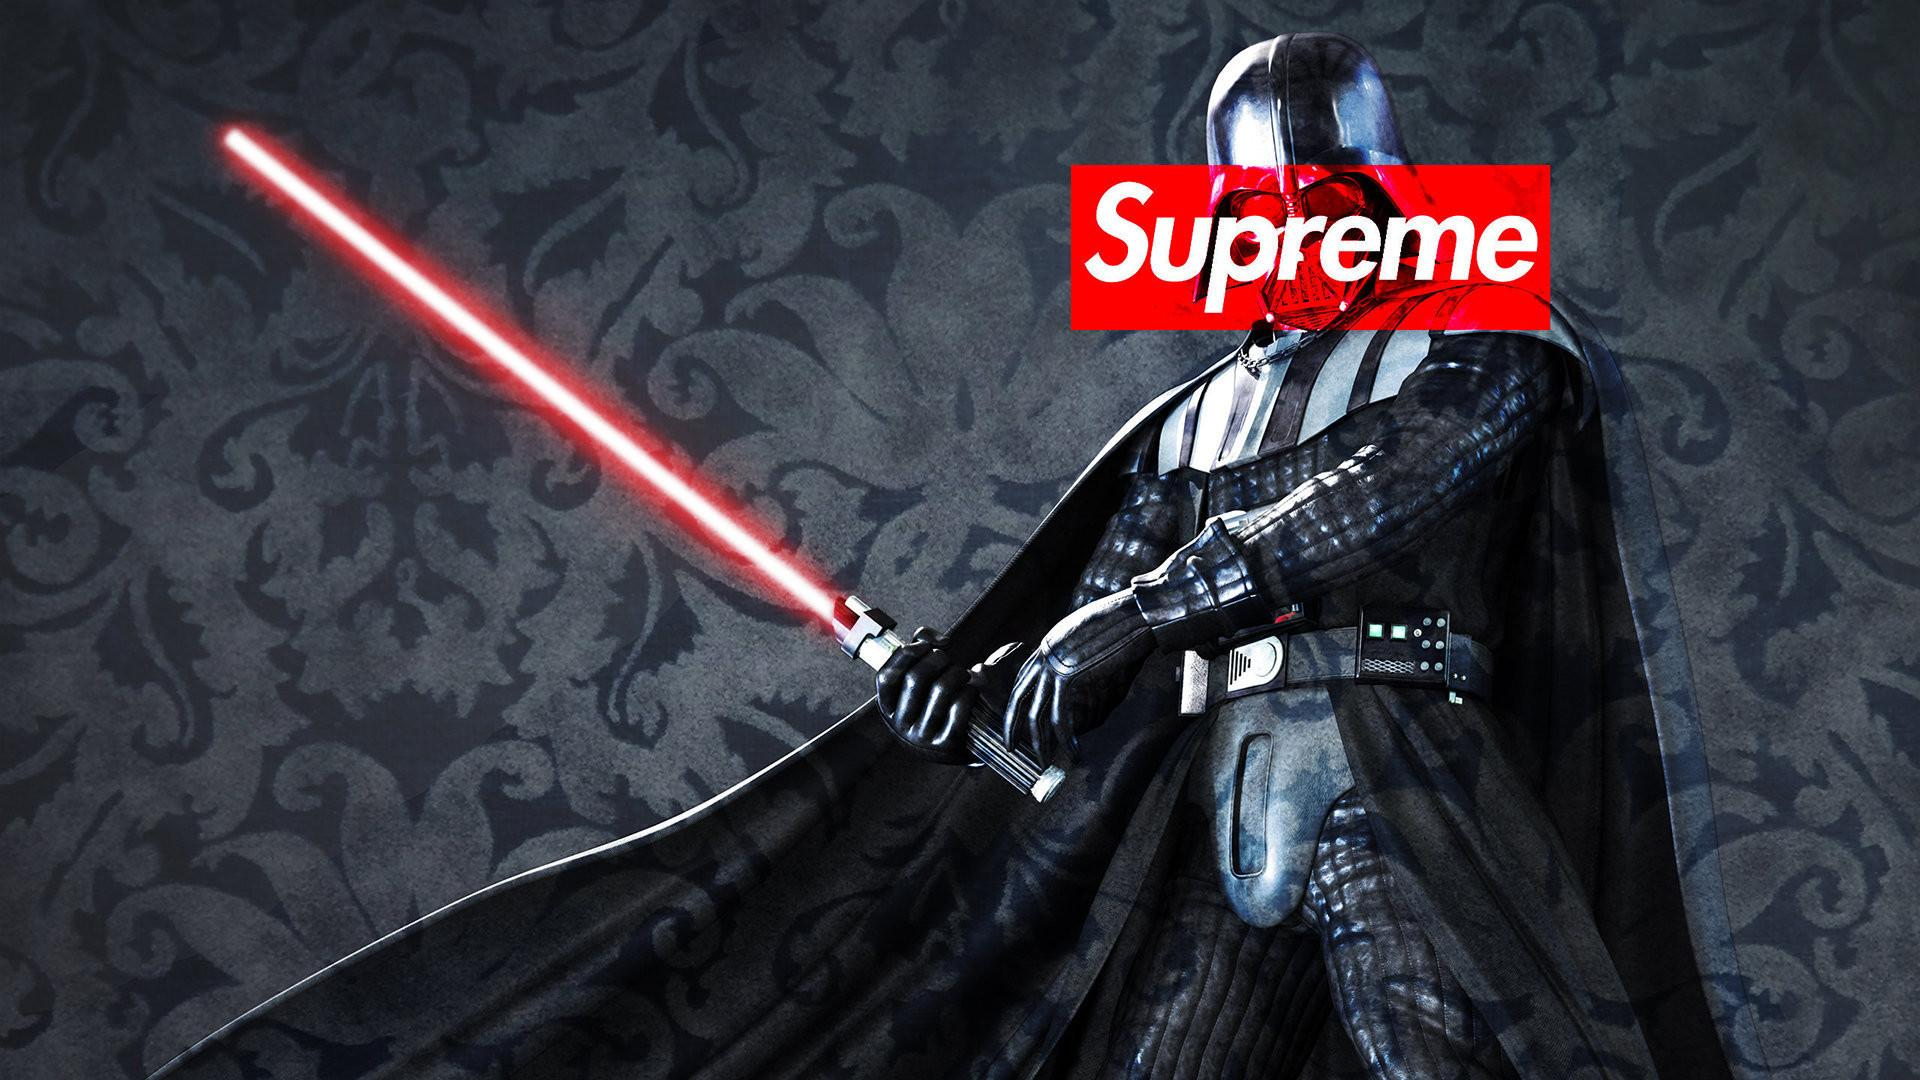 Supreme Pc Wallpapers Wallpaper Cave